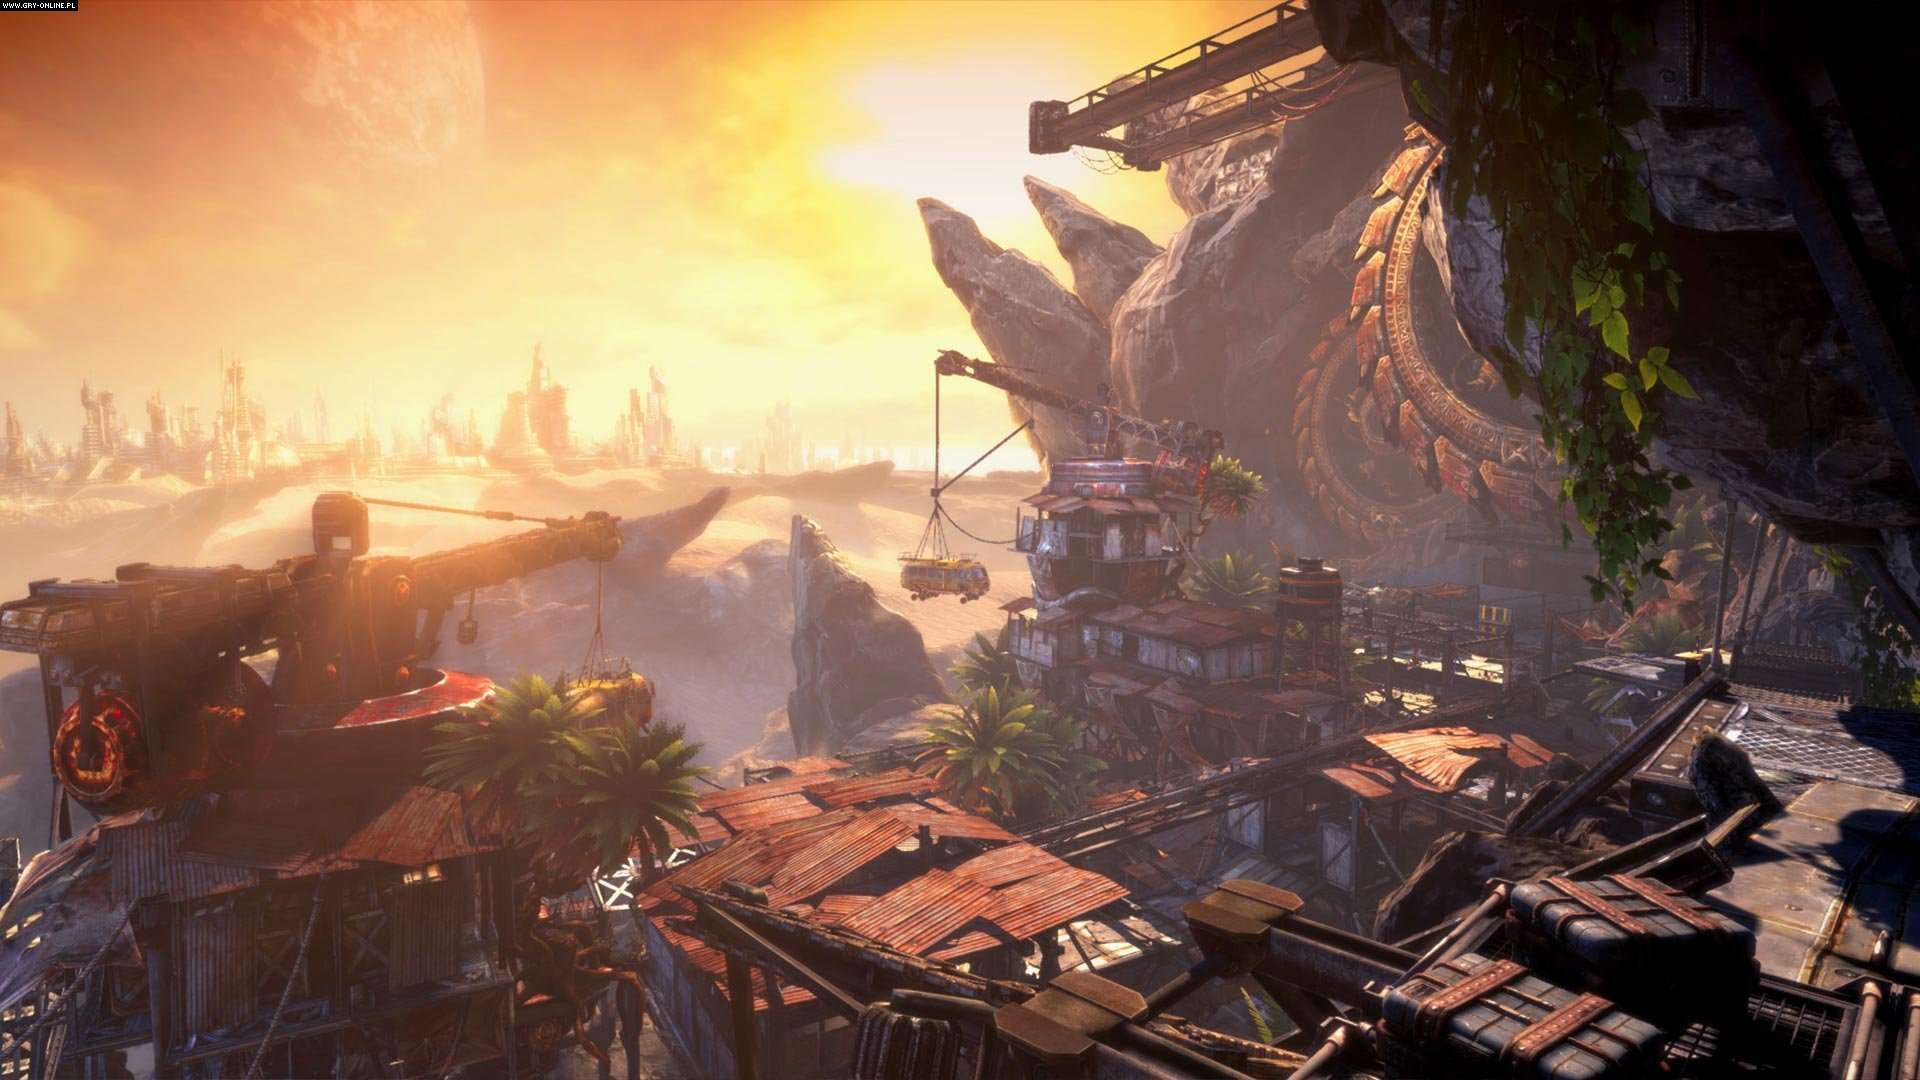 Bulletstorm: Full Clip Edition PC, PS4, XONE Games Image 27/27, People Can Fly, Gearbox Publishing